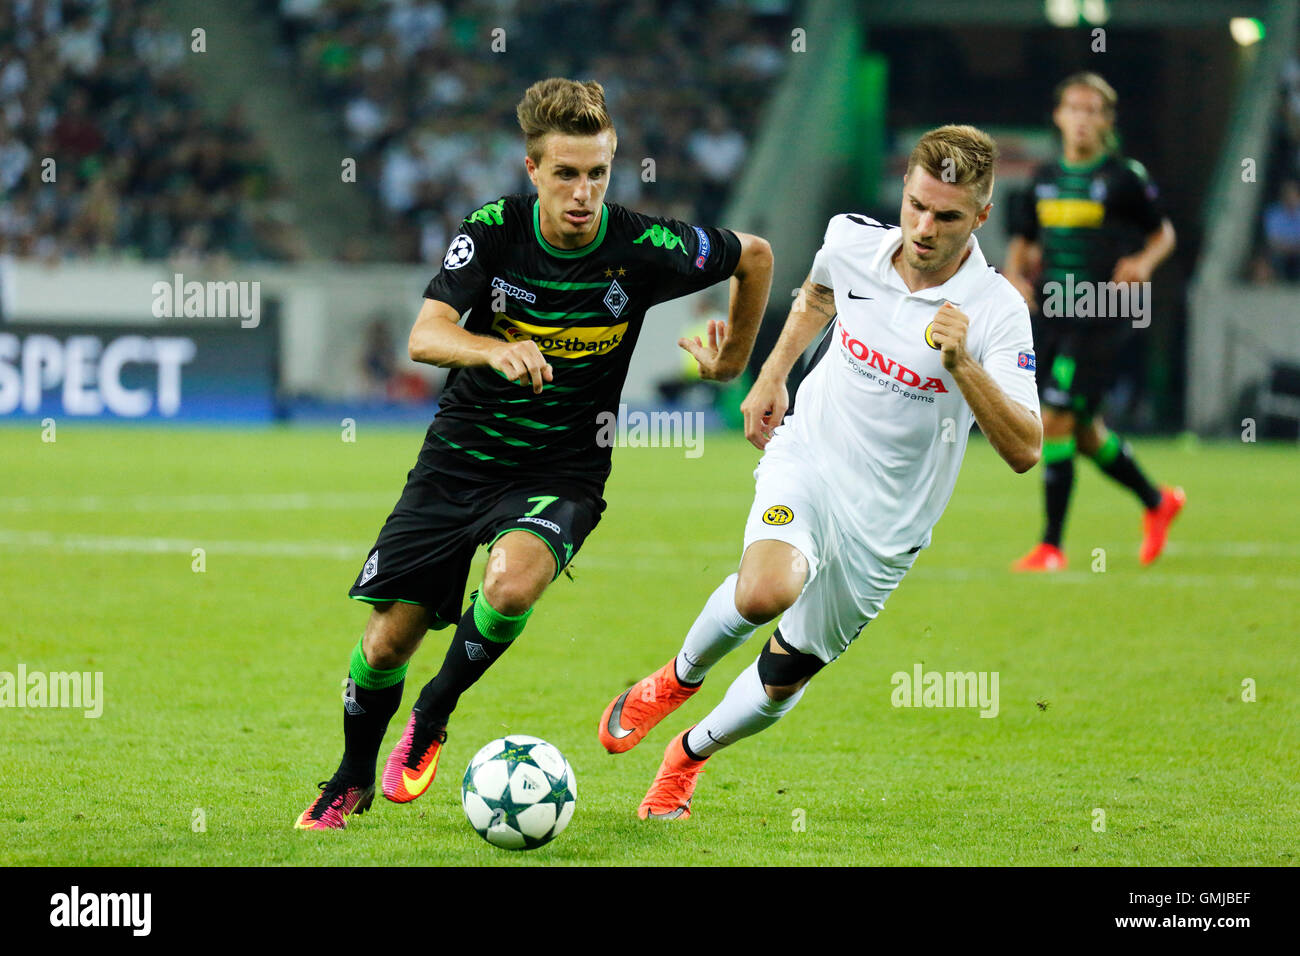 sports, football, UEFA Champions League, 2016/2017, play-offs, 2nd leg, Borussia Moenchengladbach versus Young Boys - Stock Image